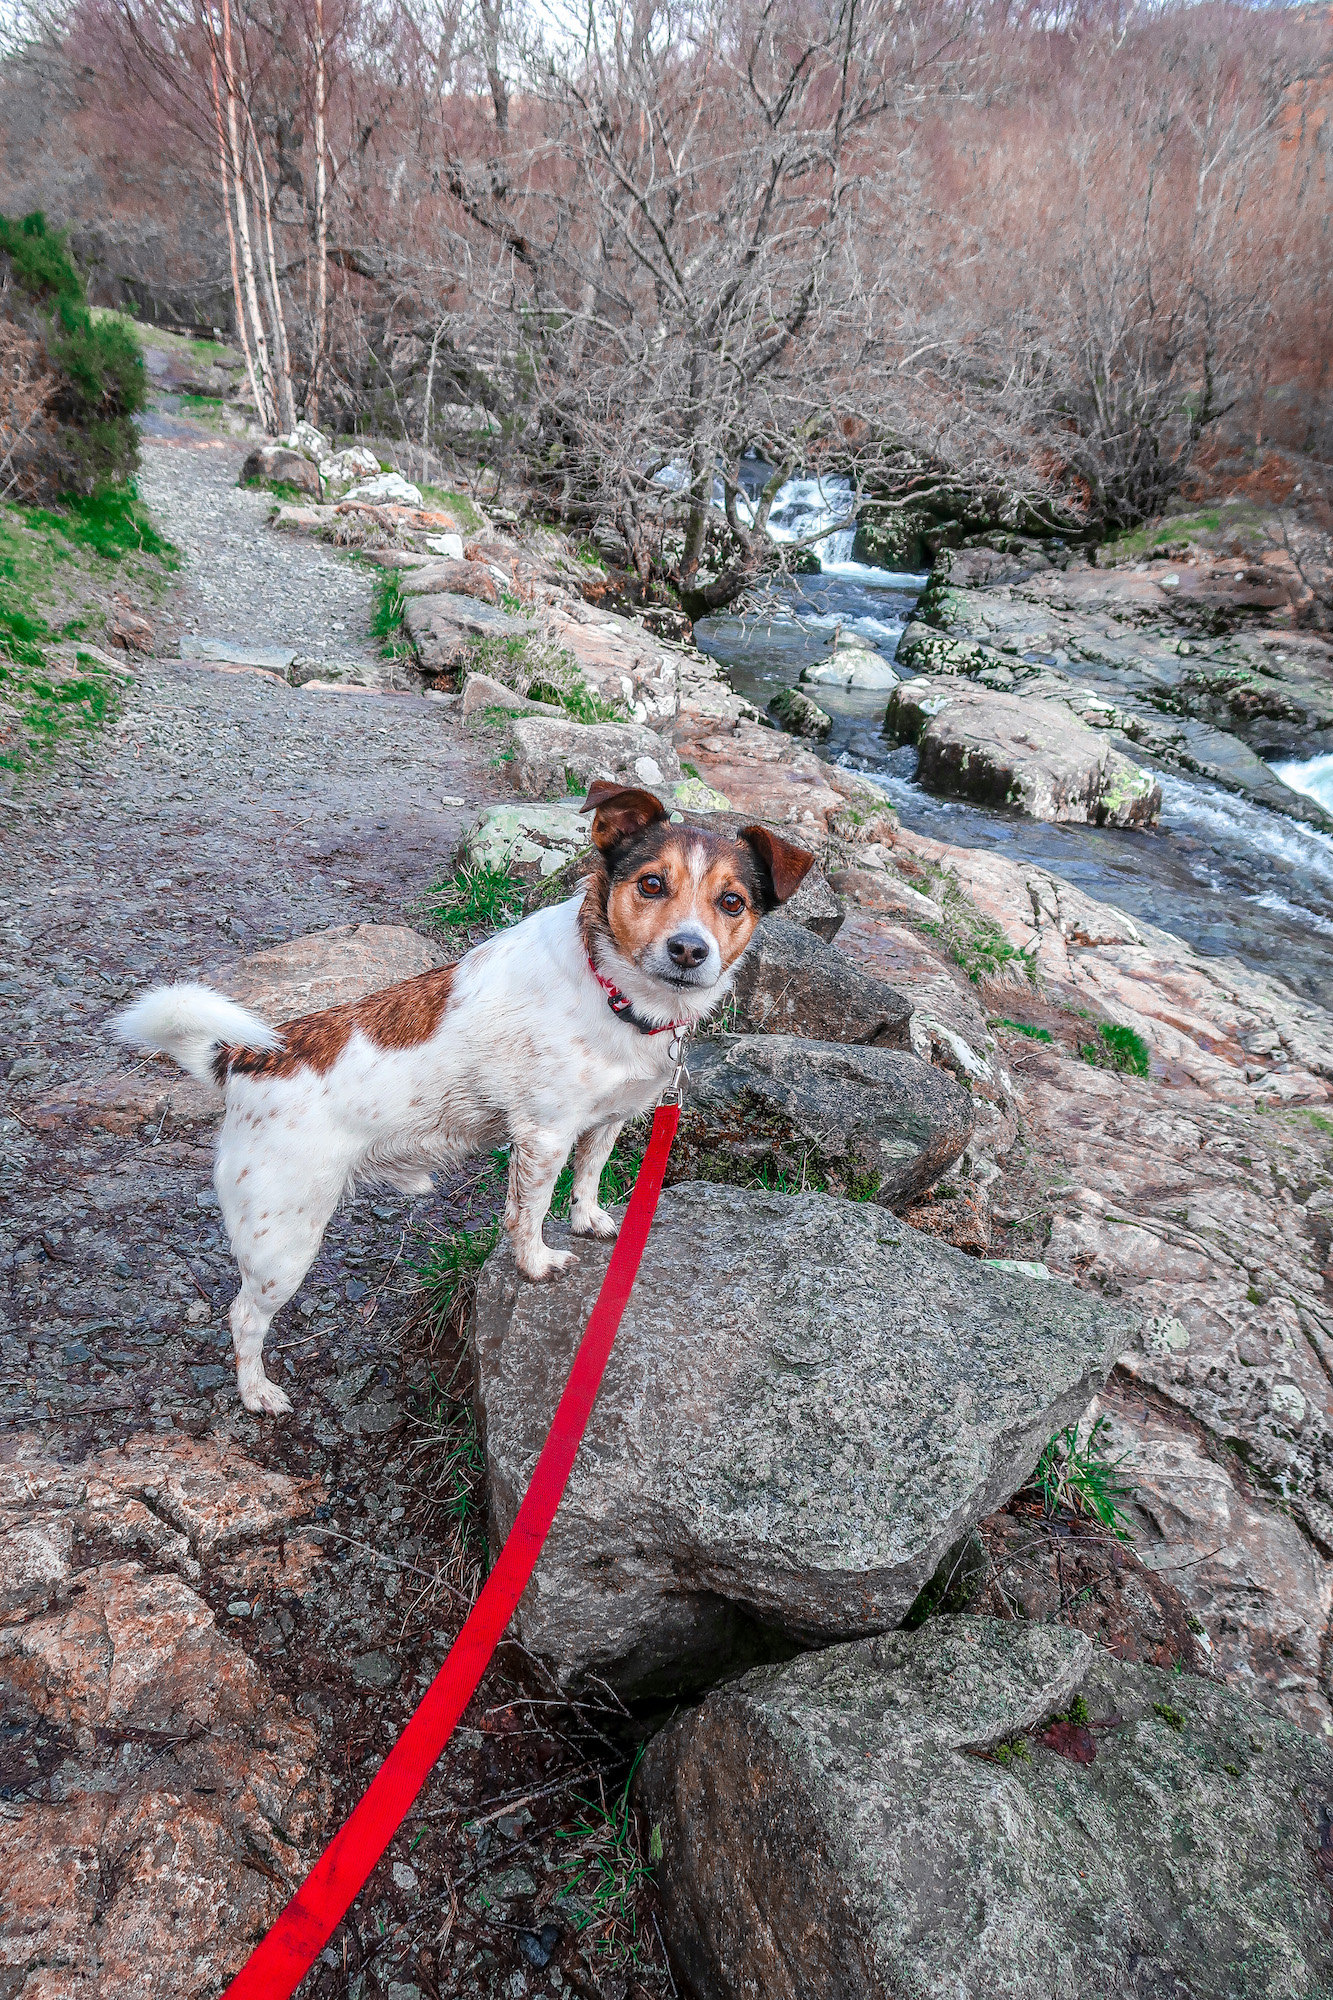 Aira Force in the Lake District | Places to visit and good walks | Waterfall | Travel Guide | Elle Blonde Luxury Lifestyle Destination Blog